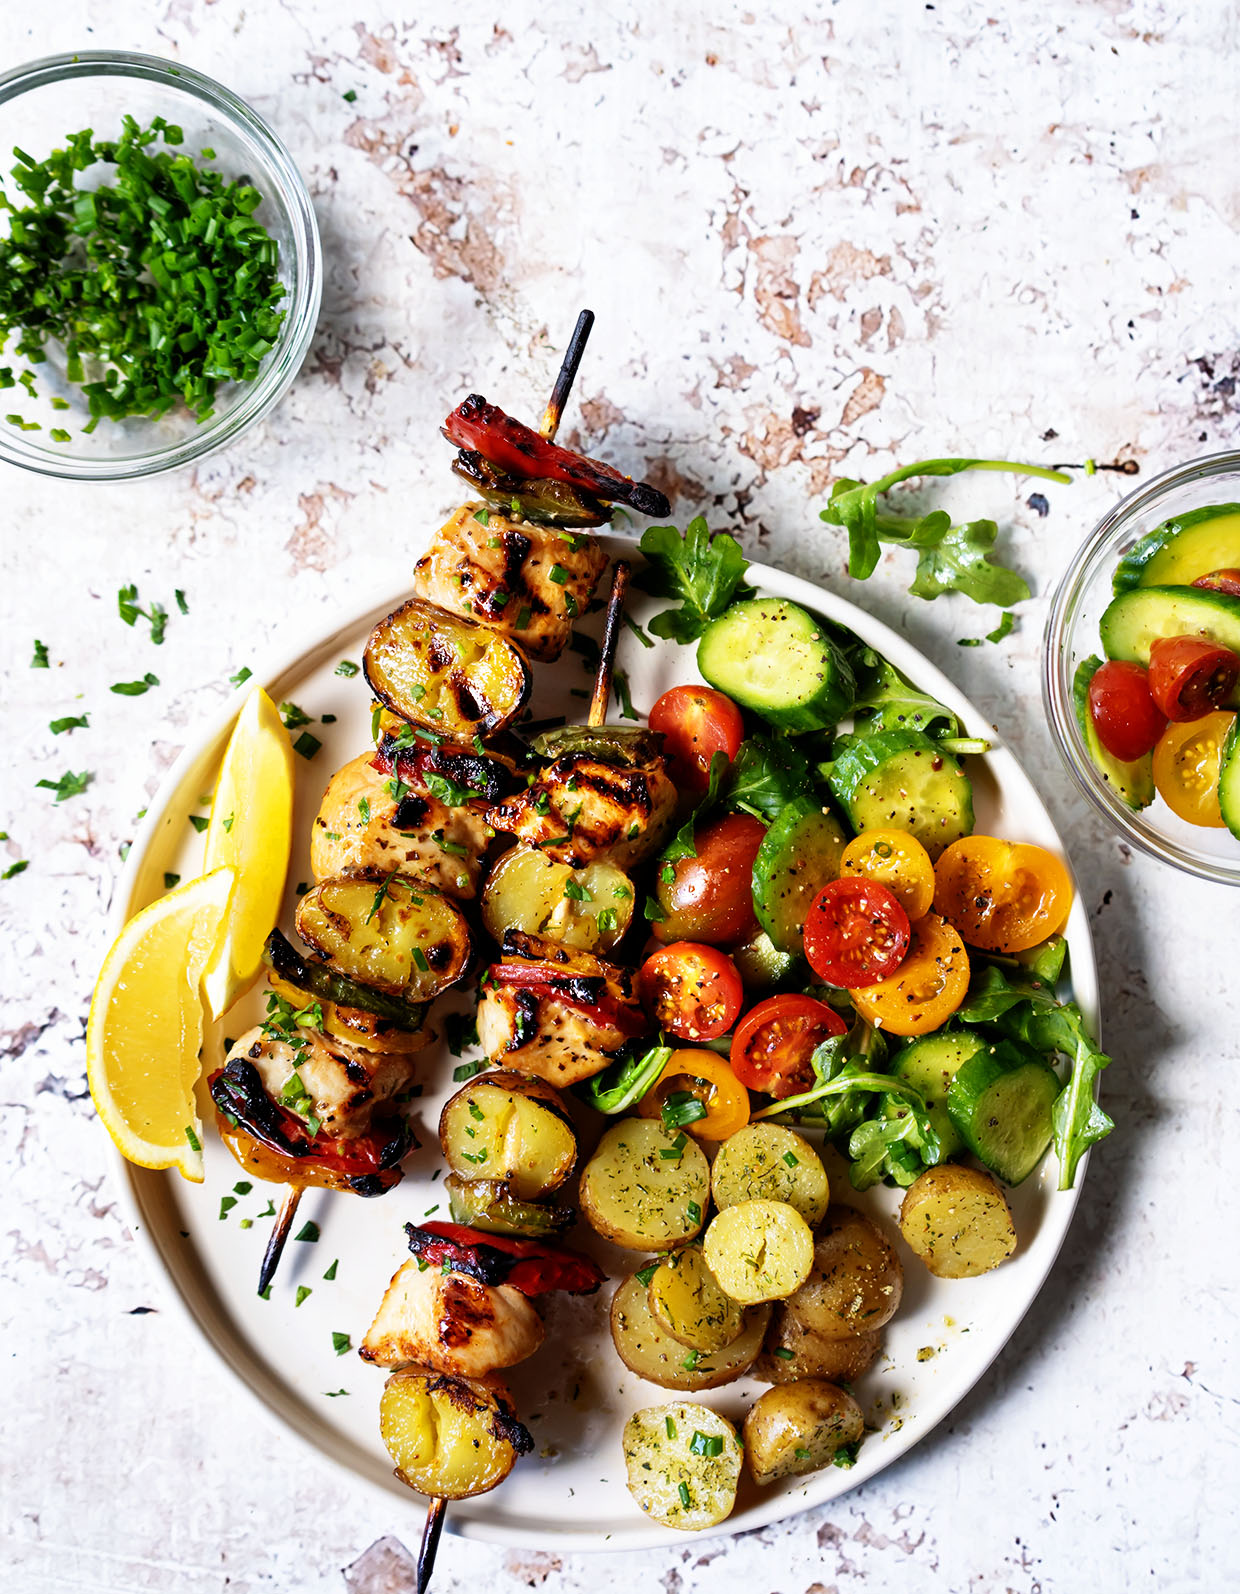 Summer grilling made easy and tasty!